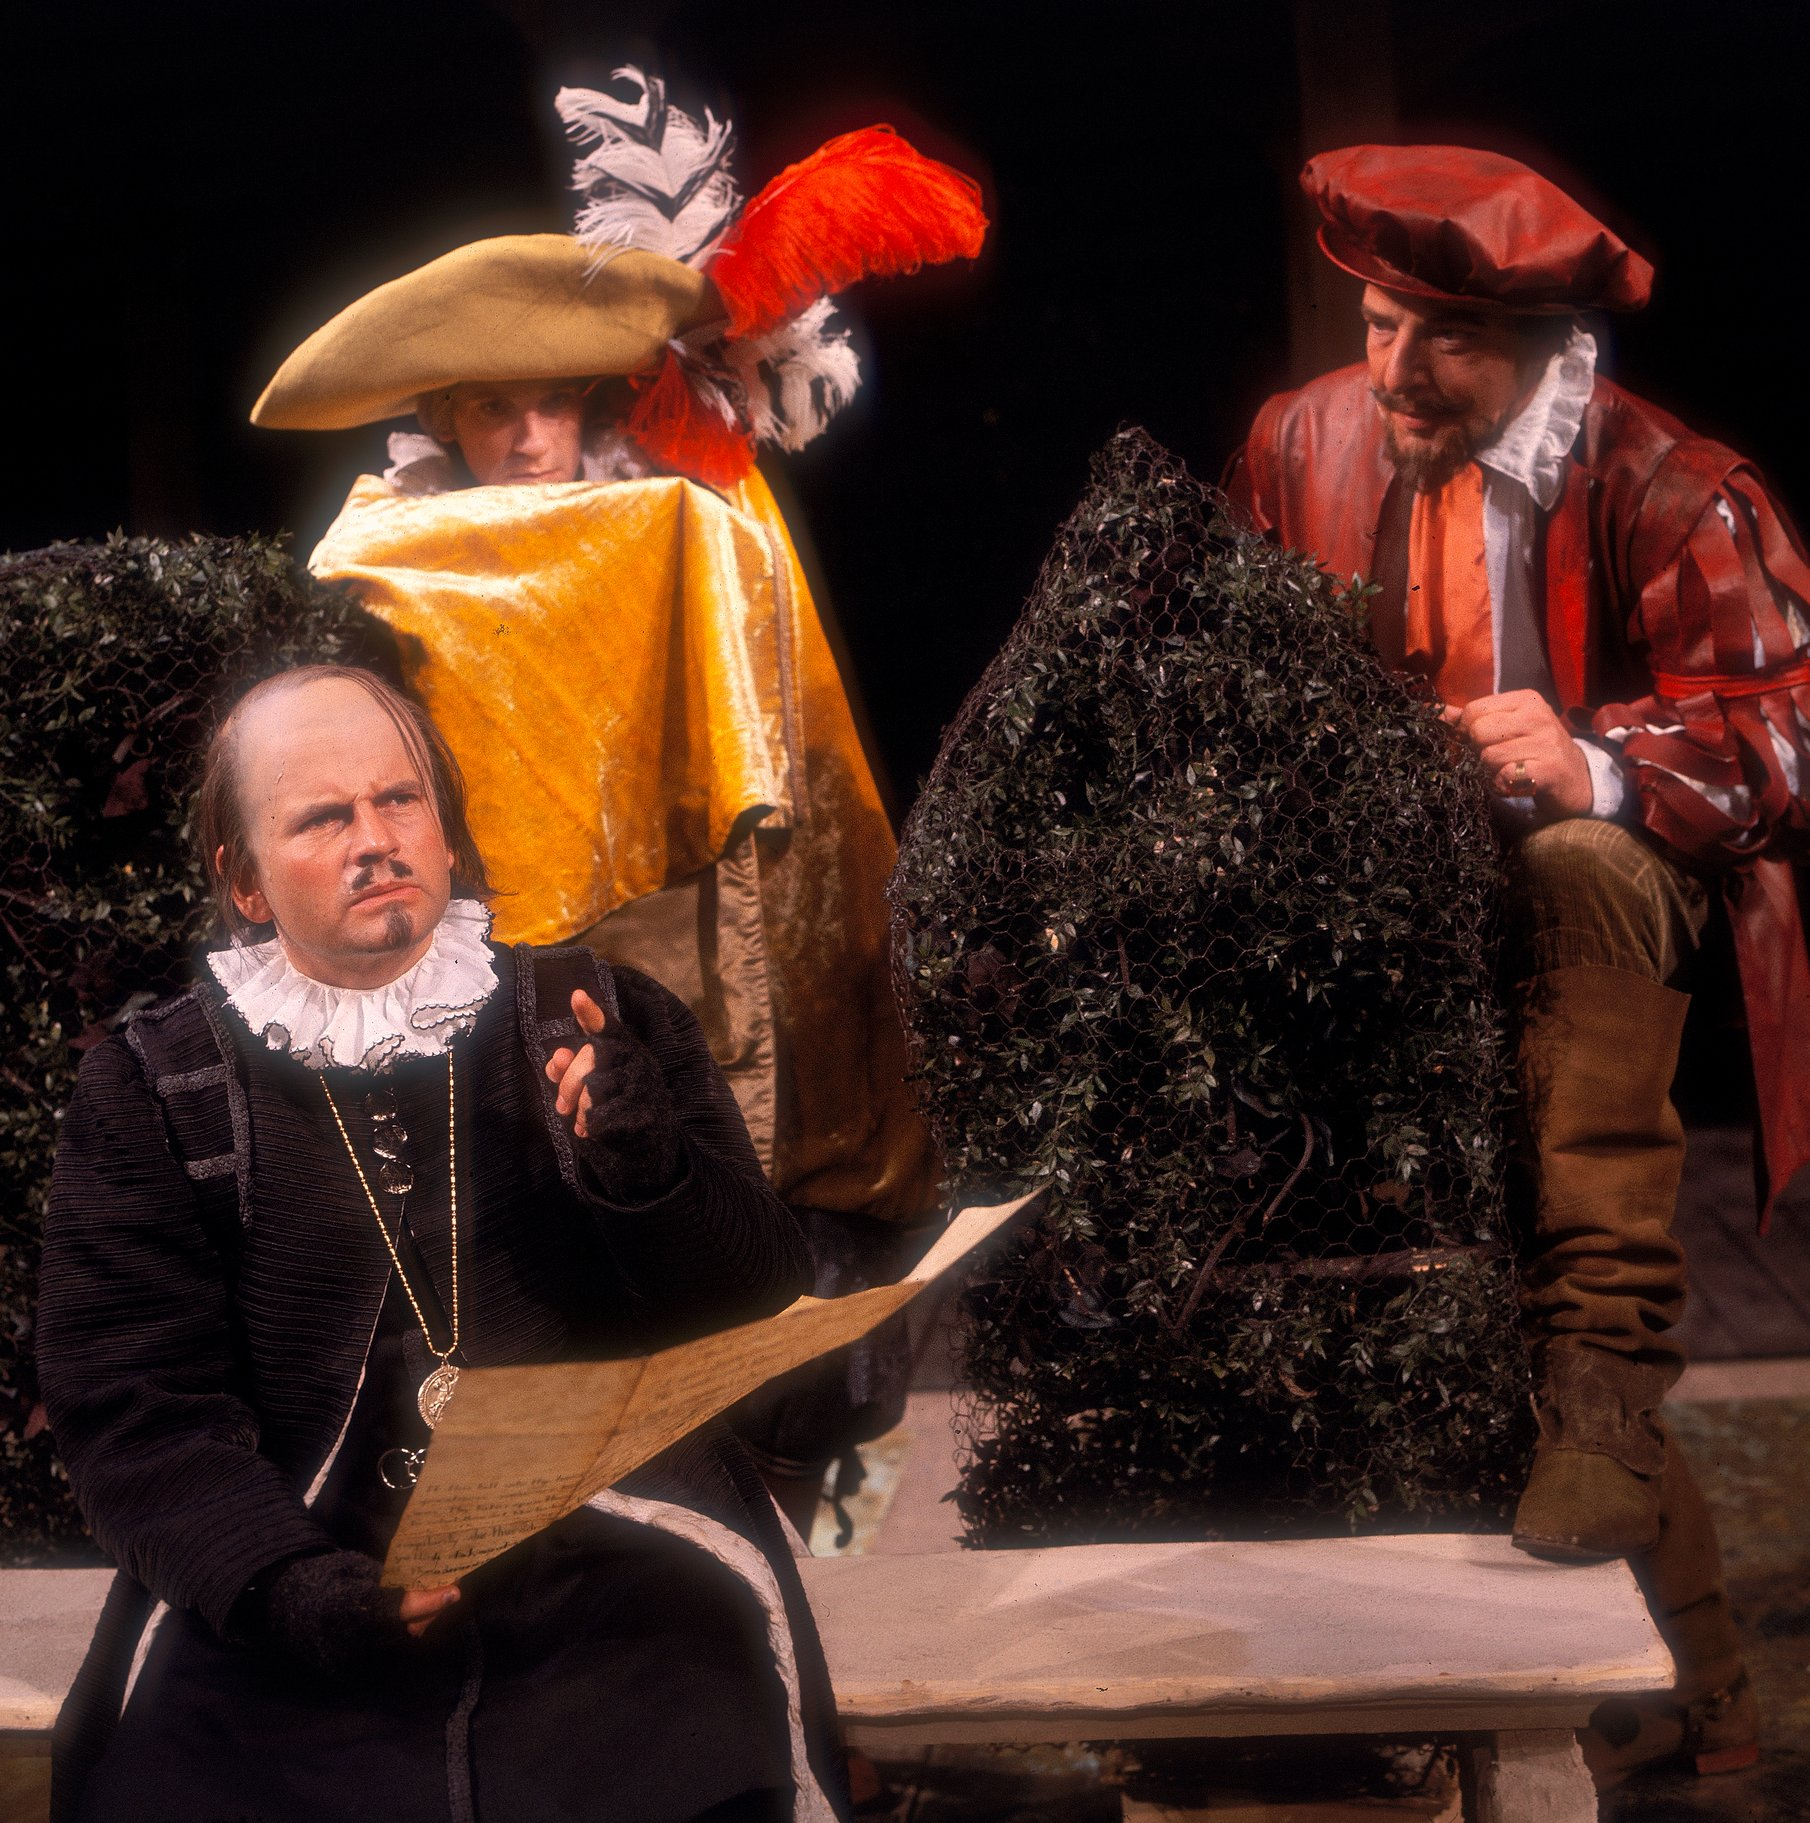 Malvolio sits on a bench dressed in black and is watched by Sir Toby and Sir Andrew who hide behind bushes behind him in the 1966 production of Twelfth Night.